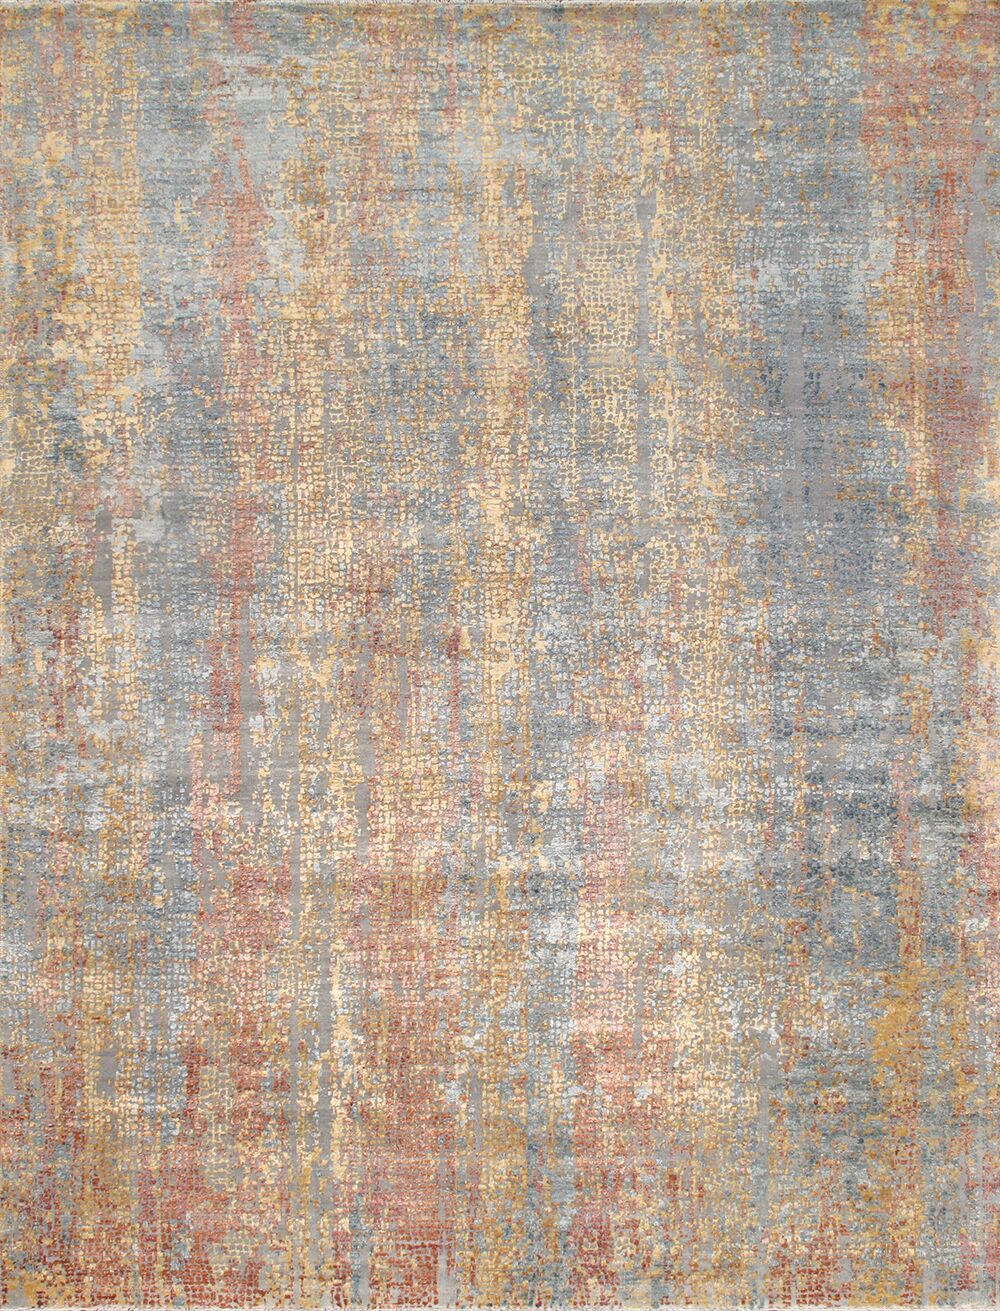 Gemstone Hand-Knotted Wool and Silk Orange/Blue Area Rug Rug Size: Rectangle 7'11